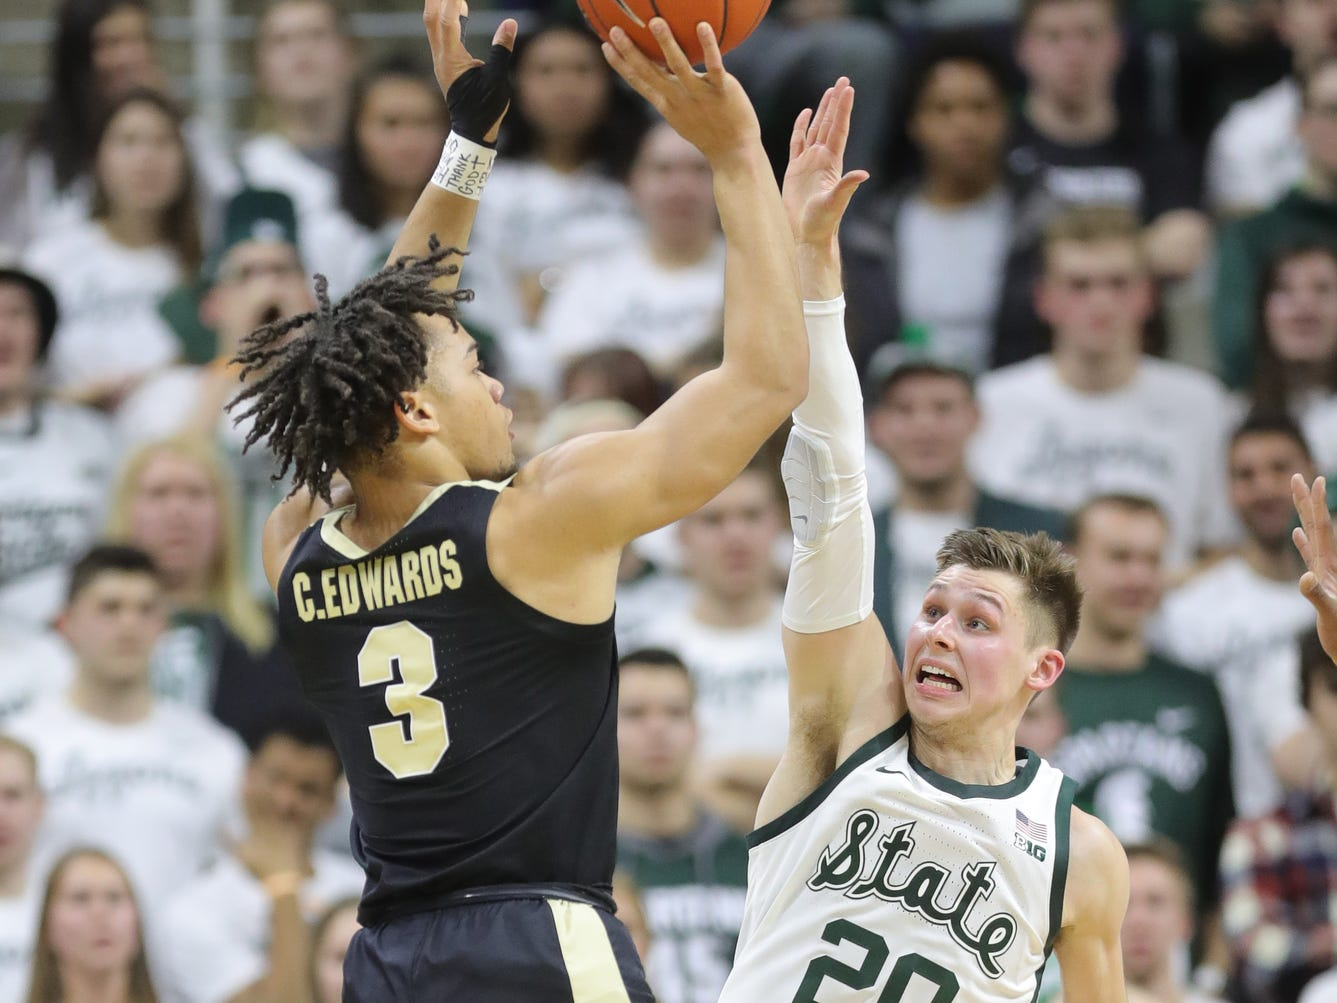 Michigan State guard Matt McQuaid defends Purdue guard Carsen Edwards, Jan. 8 at the Breslin Center in East Lansing.